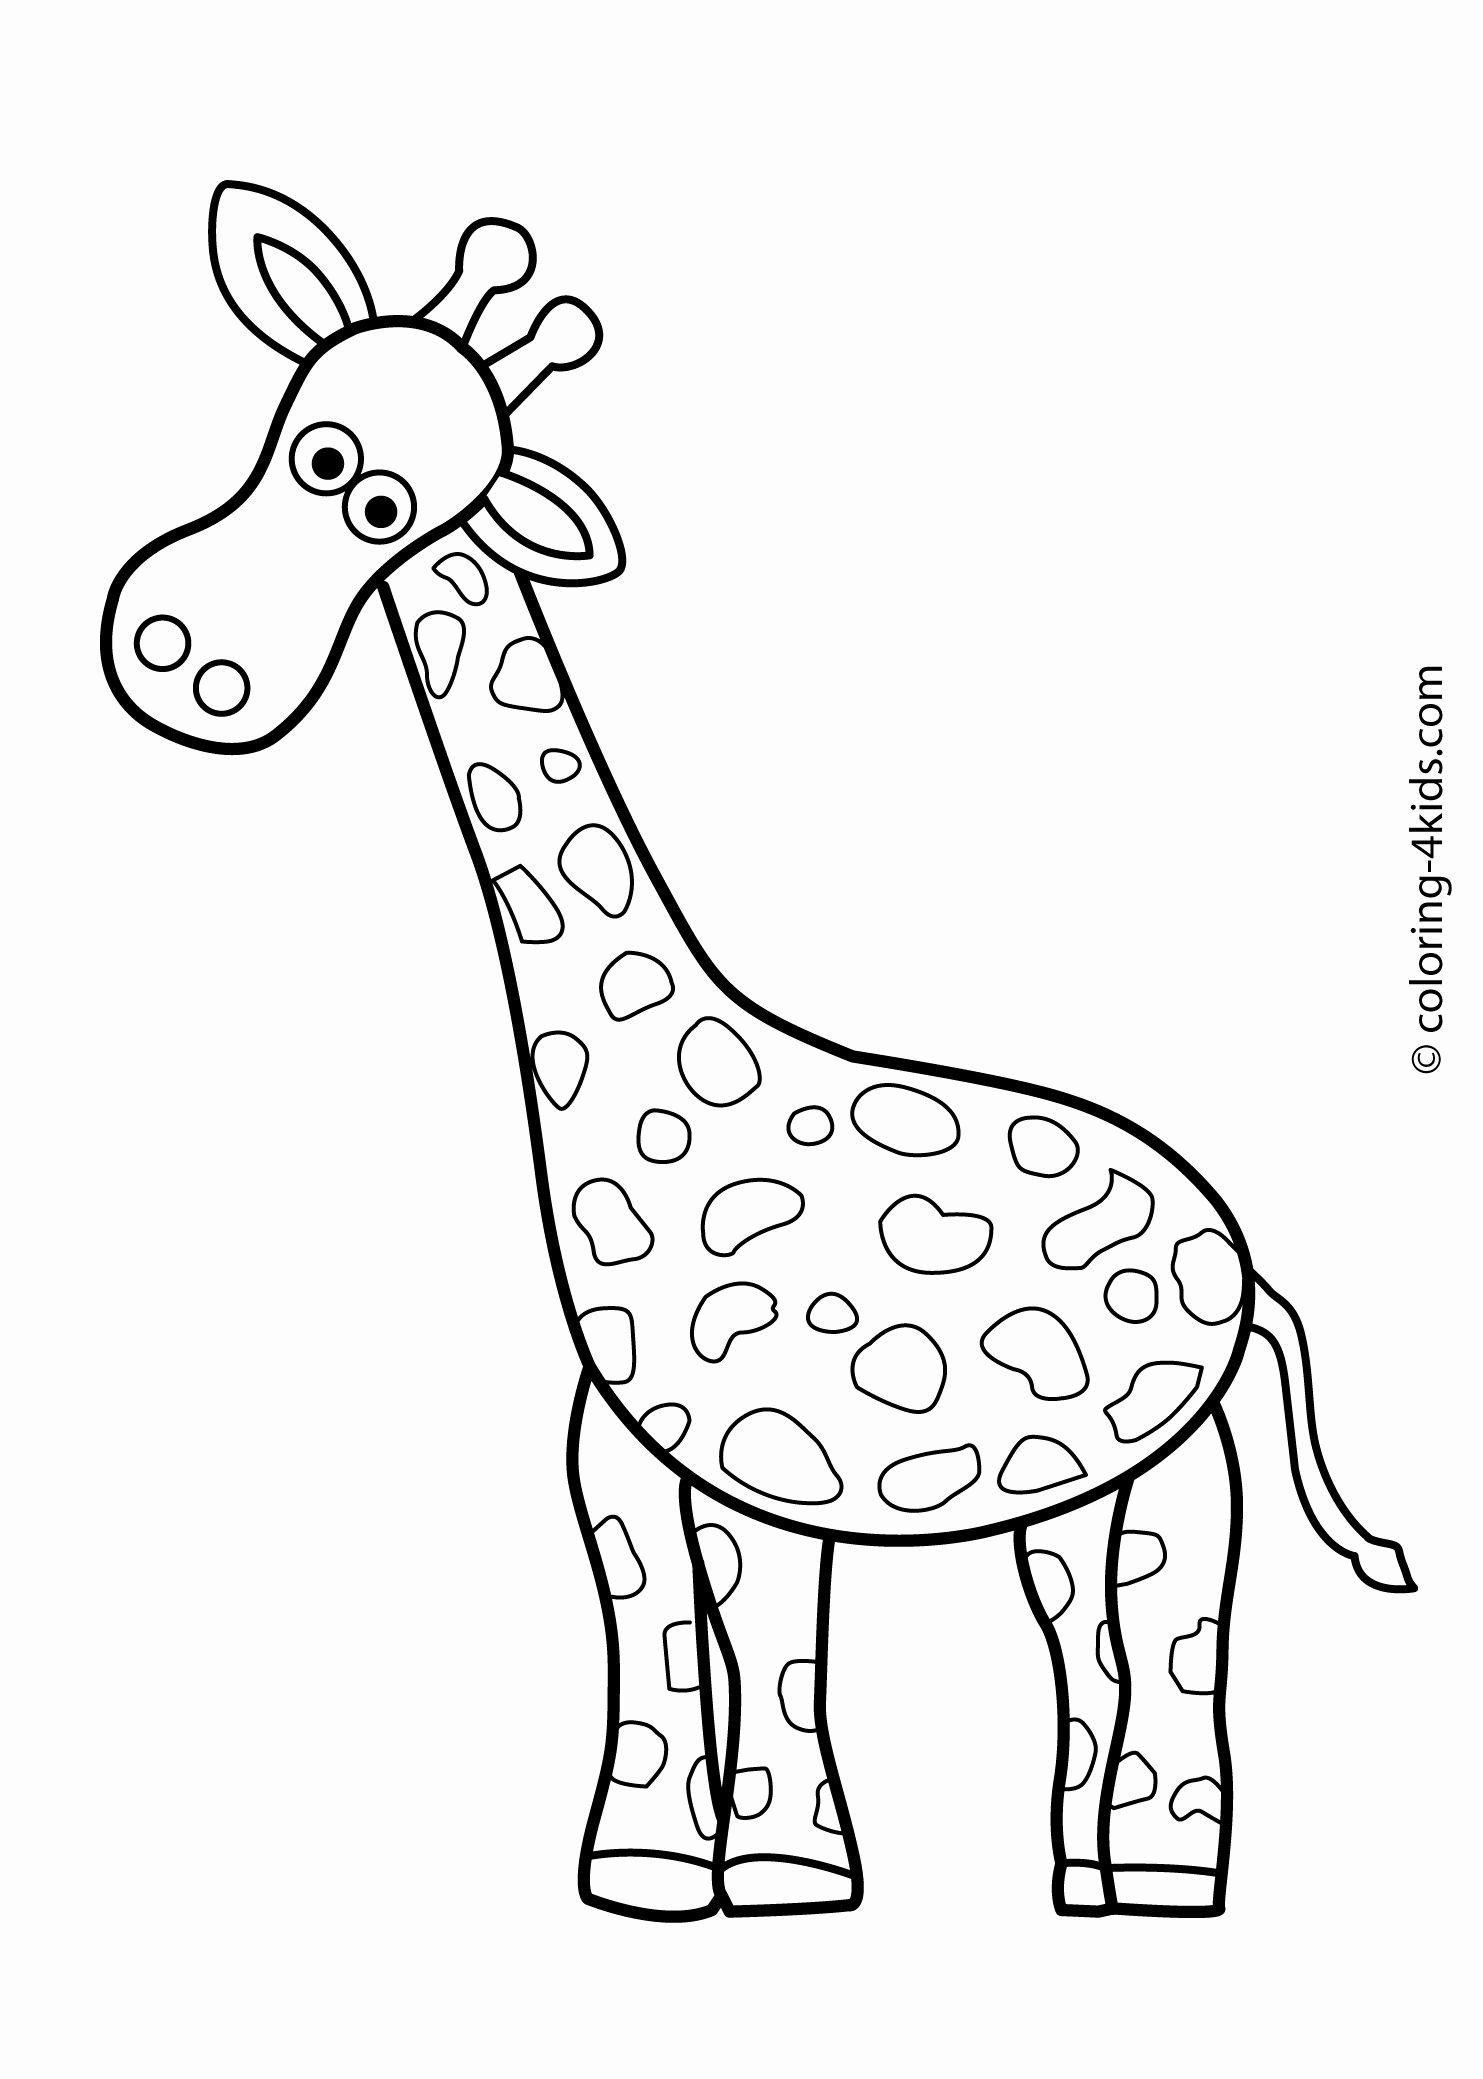 Free Zoo Animal Coloring Pages Free Coloring Zoo Animals In 2020 With Images In 2020 Zoo Animal Coloring Pages Giraffe Coloring Pages Animal Coloring Books